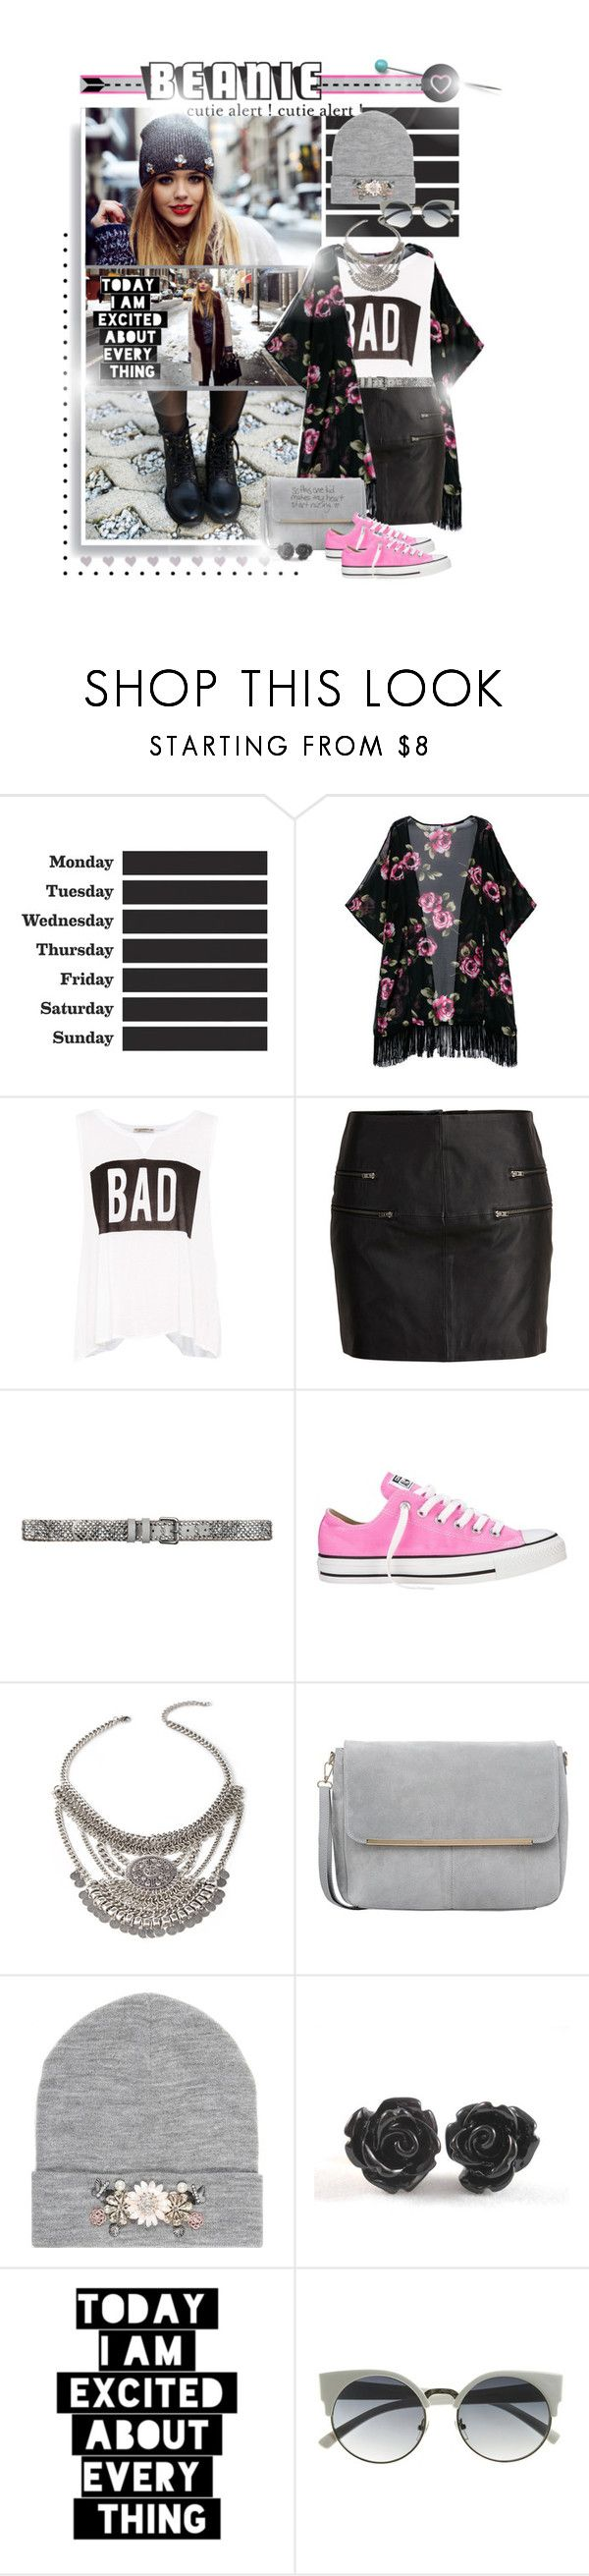 """""""Love my beanie // cutie alert!"""" by lisageurts ❤ liked on Polyvore featuring ferm LIVING, Pull&Bear, SELECTED, BeckSöndergaard, Converse, Forever 21, George J. Love, River Island, WALL and Seletti"""